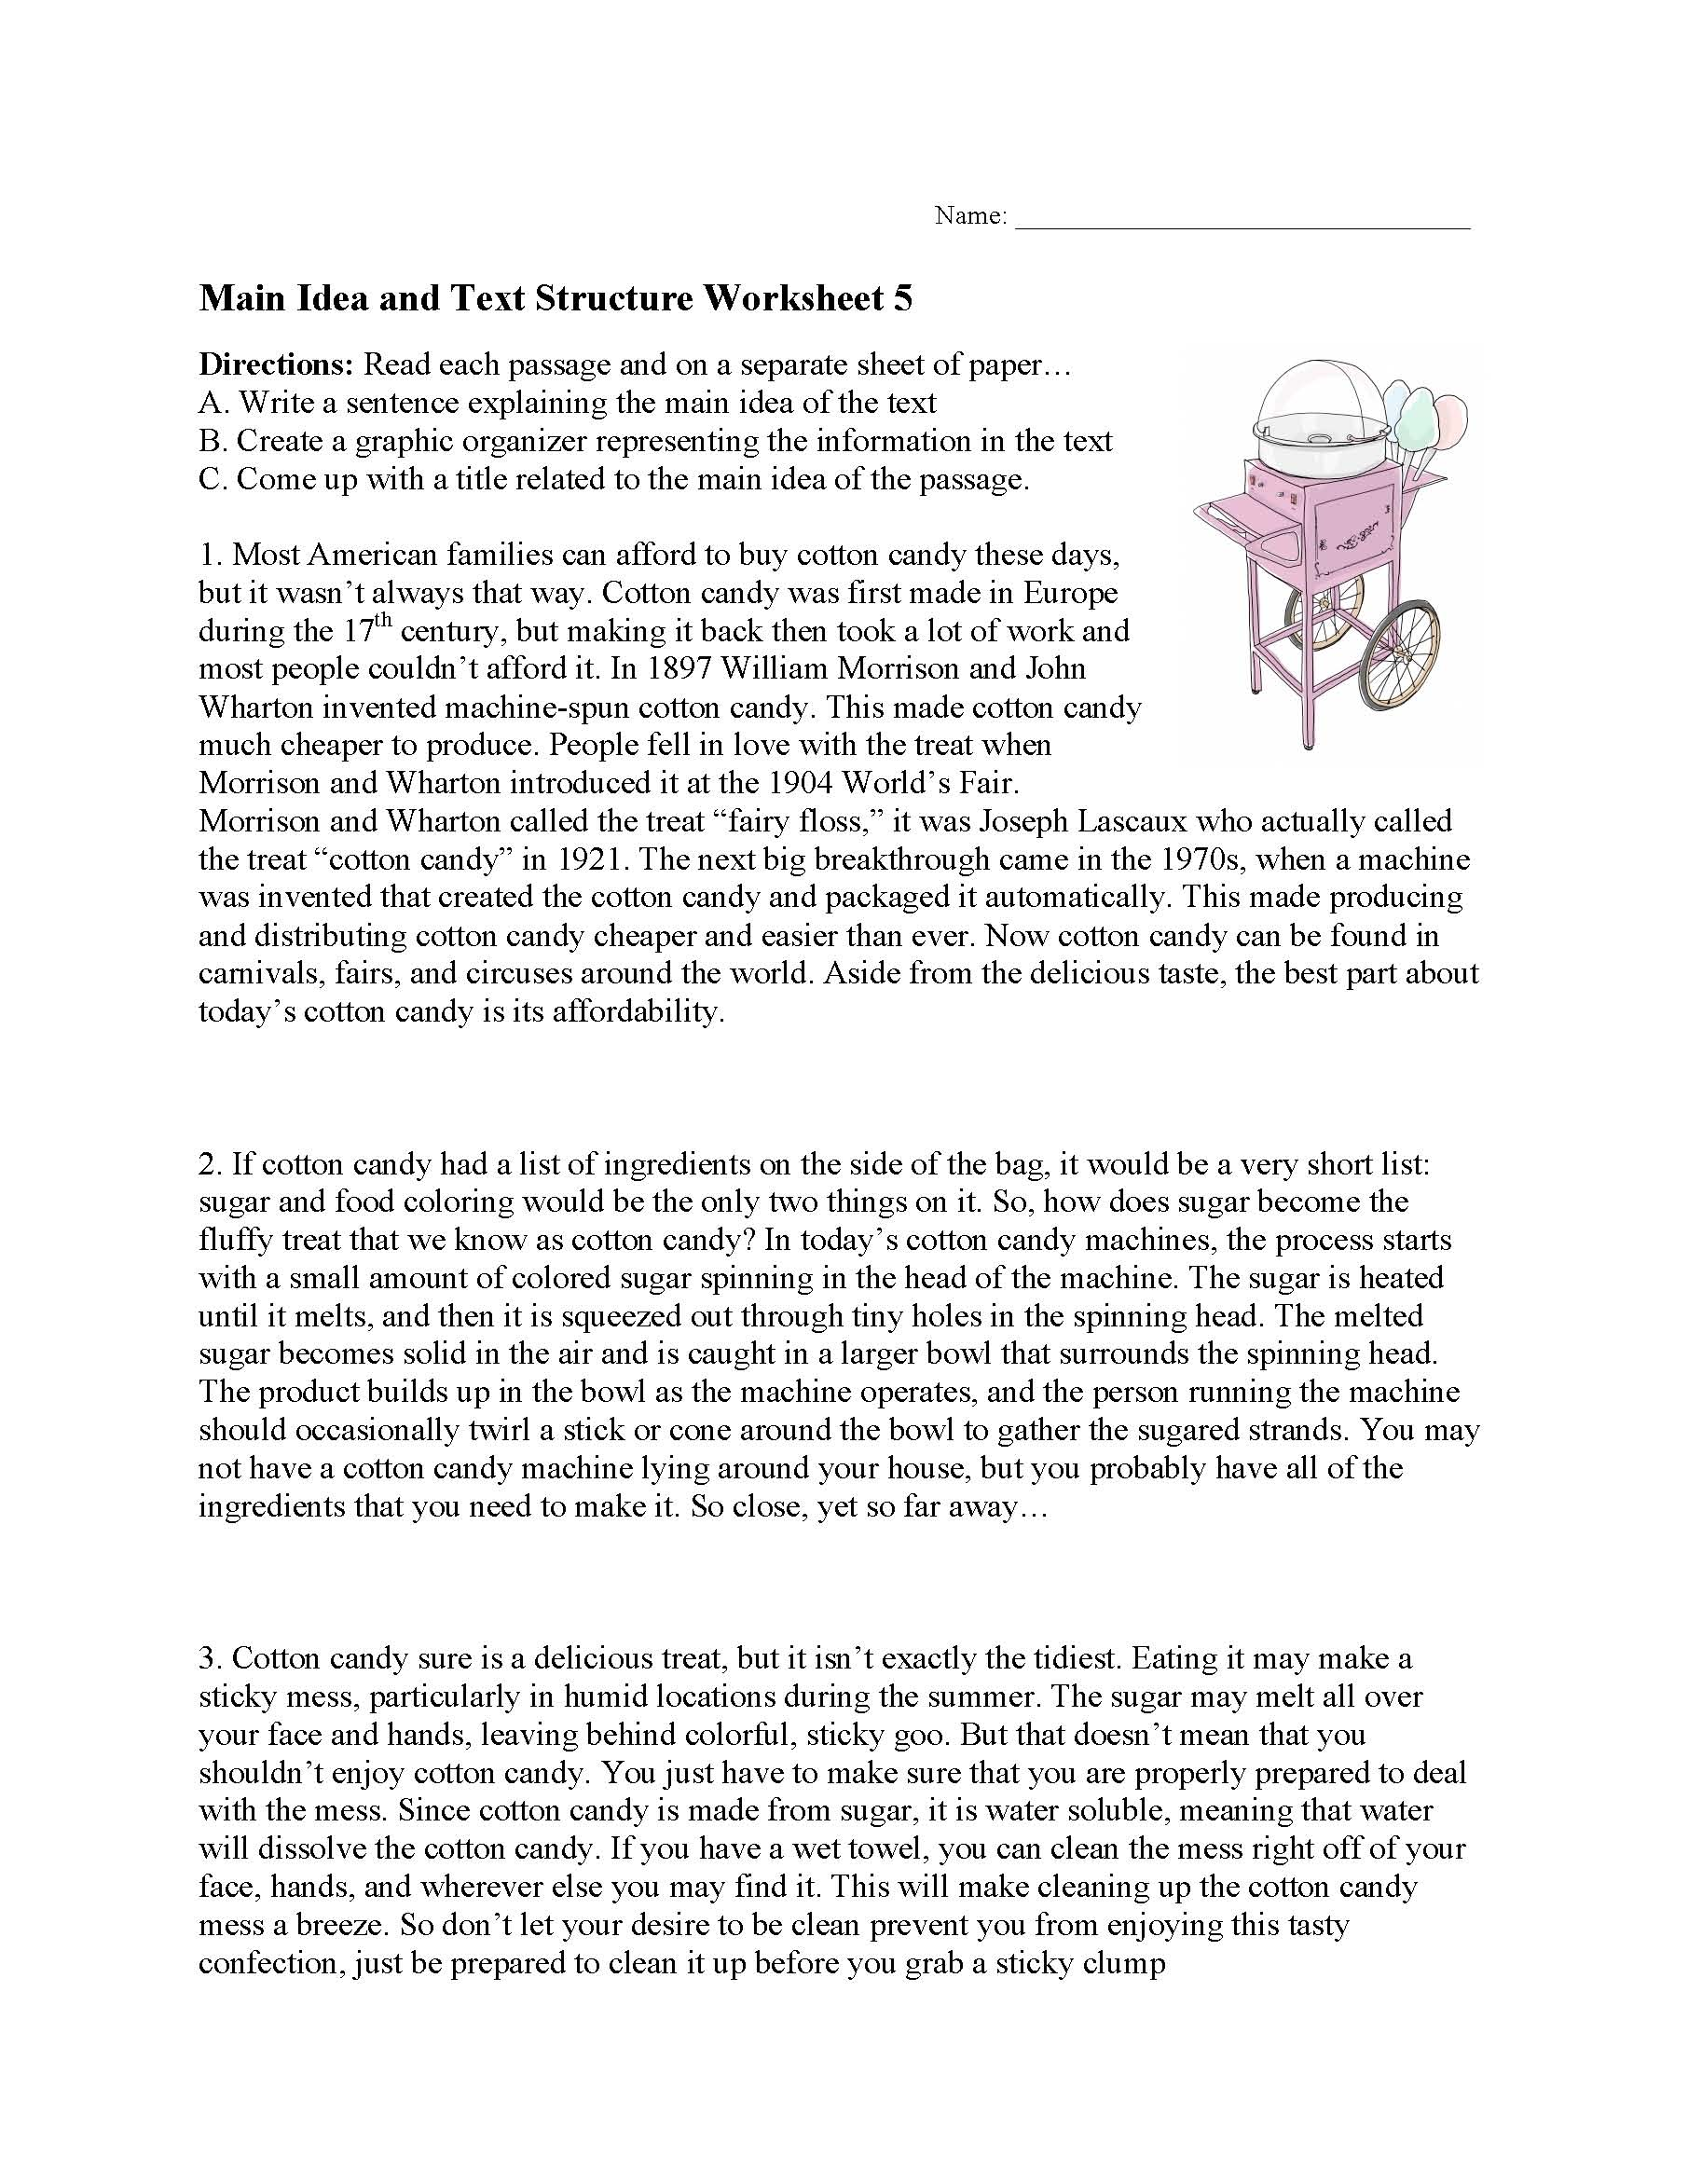 Preview The Text Worksheet